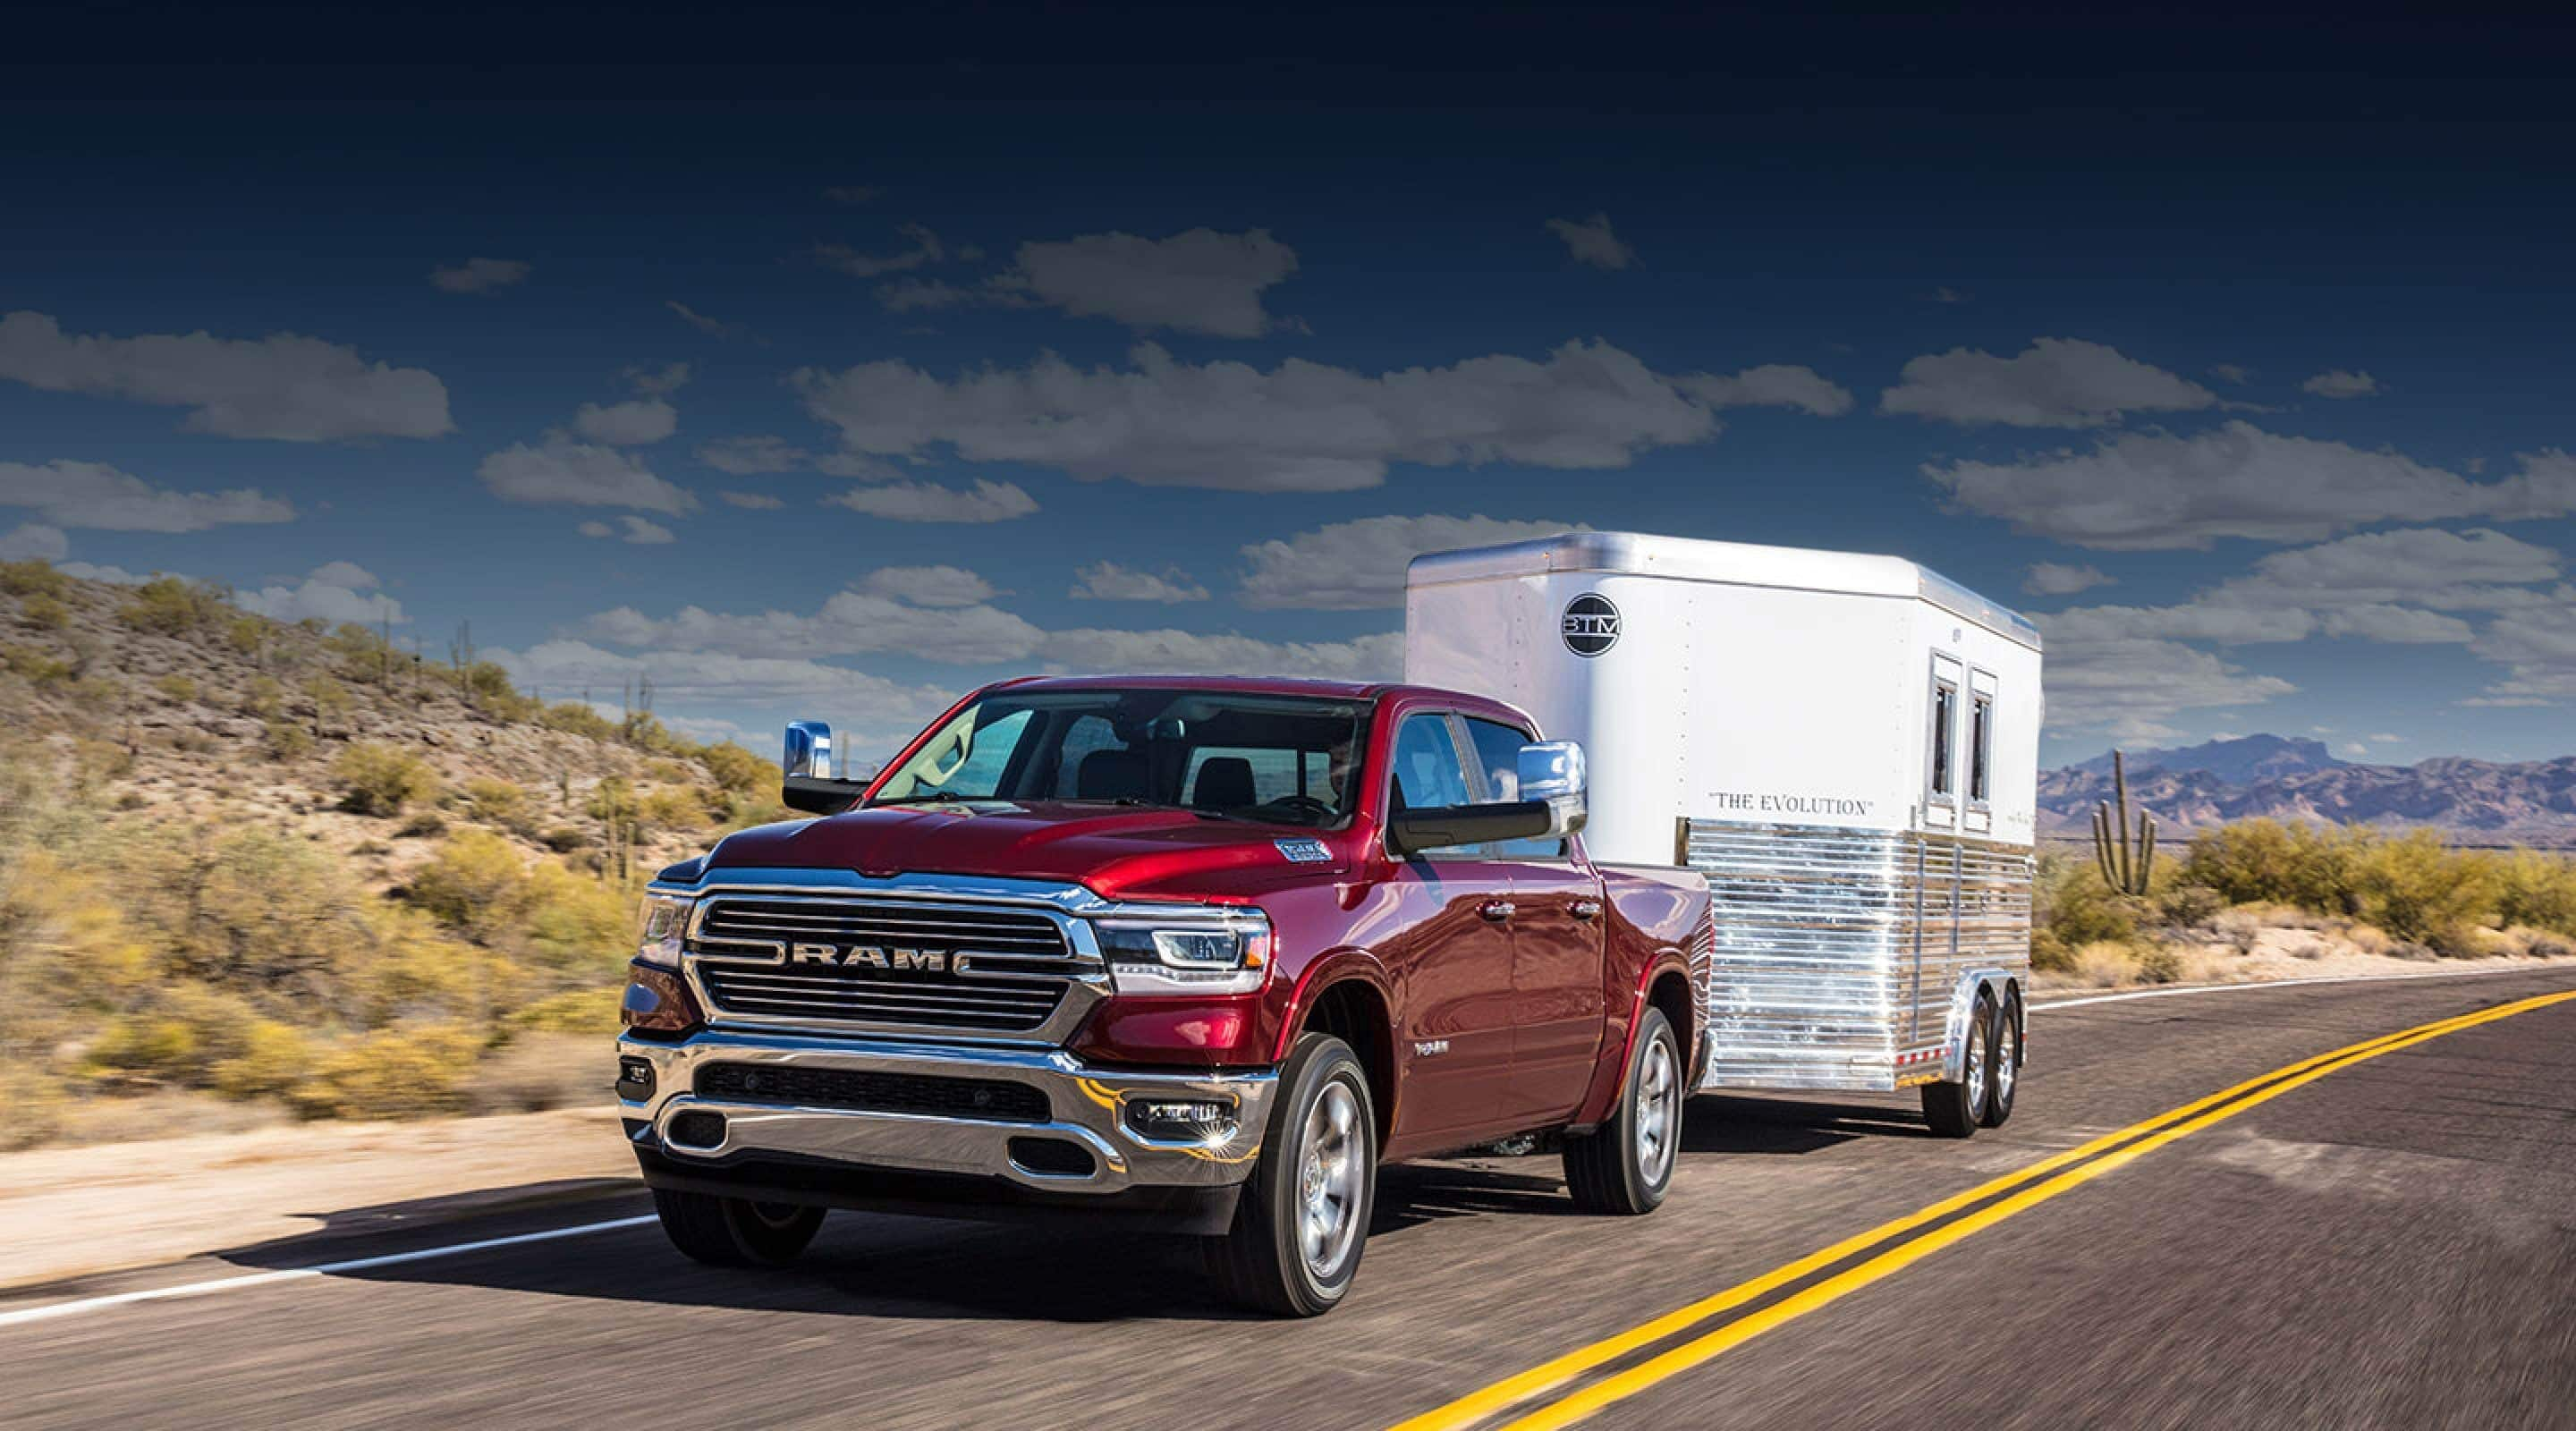 2020 Ram 1500 Towing Capacity More